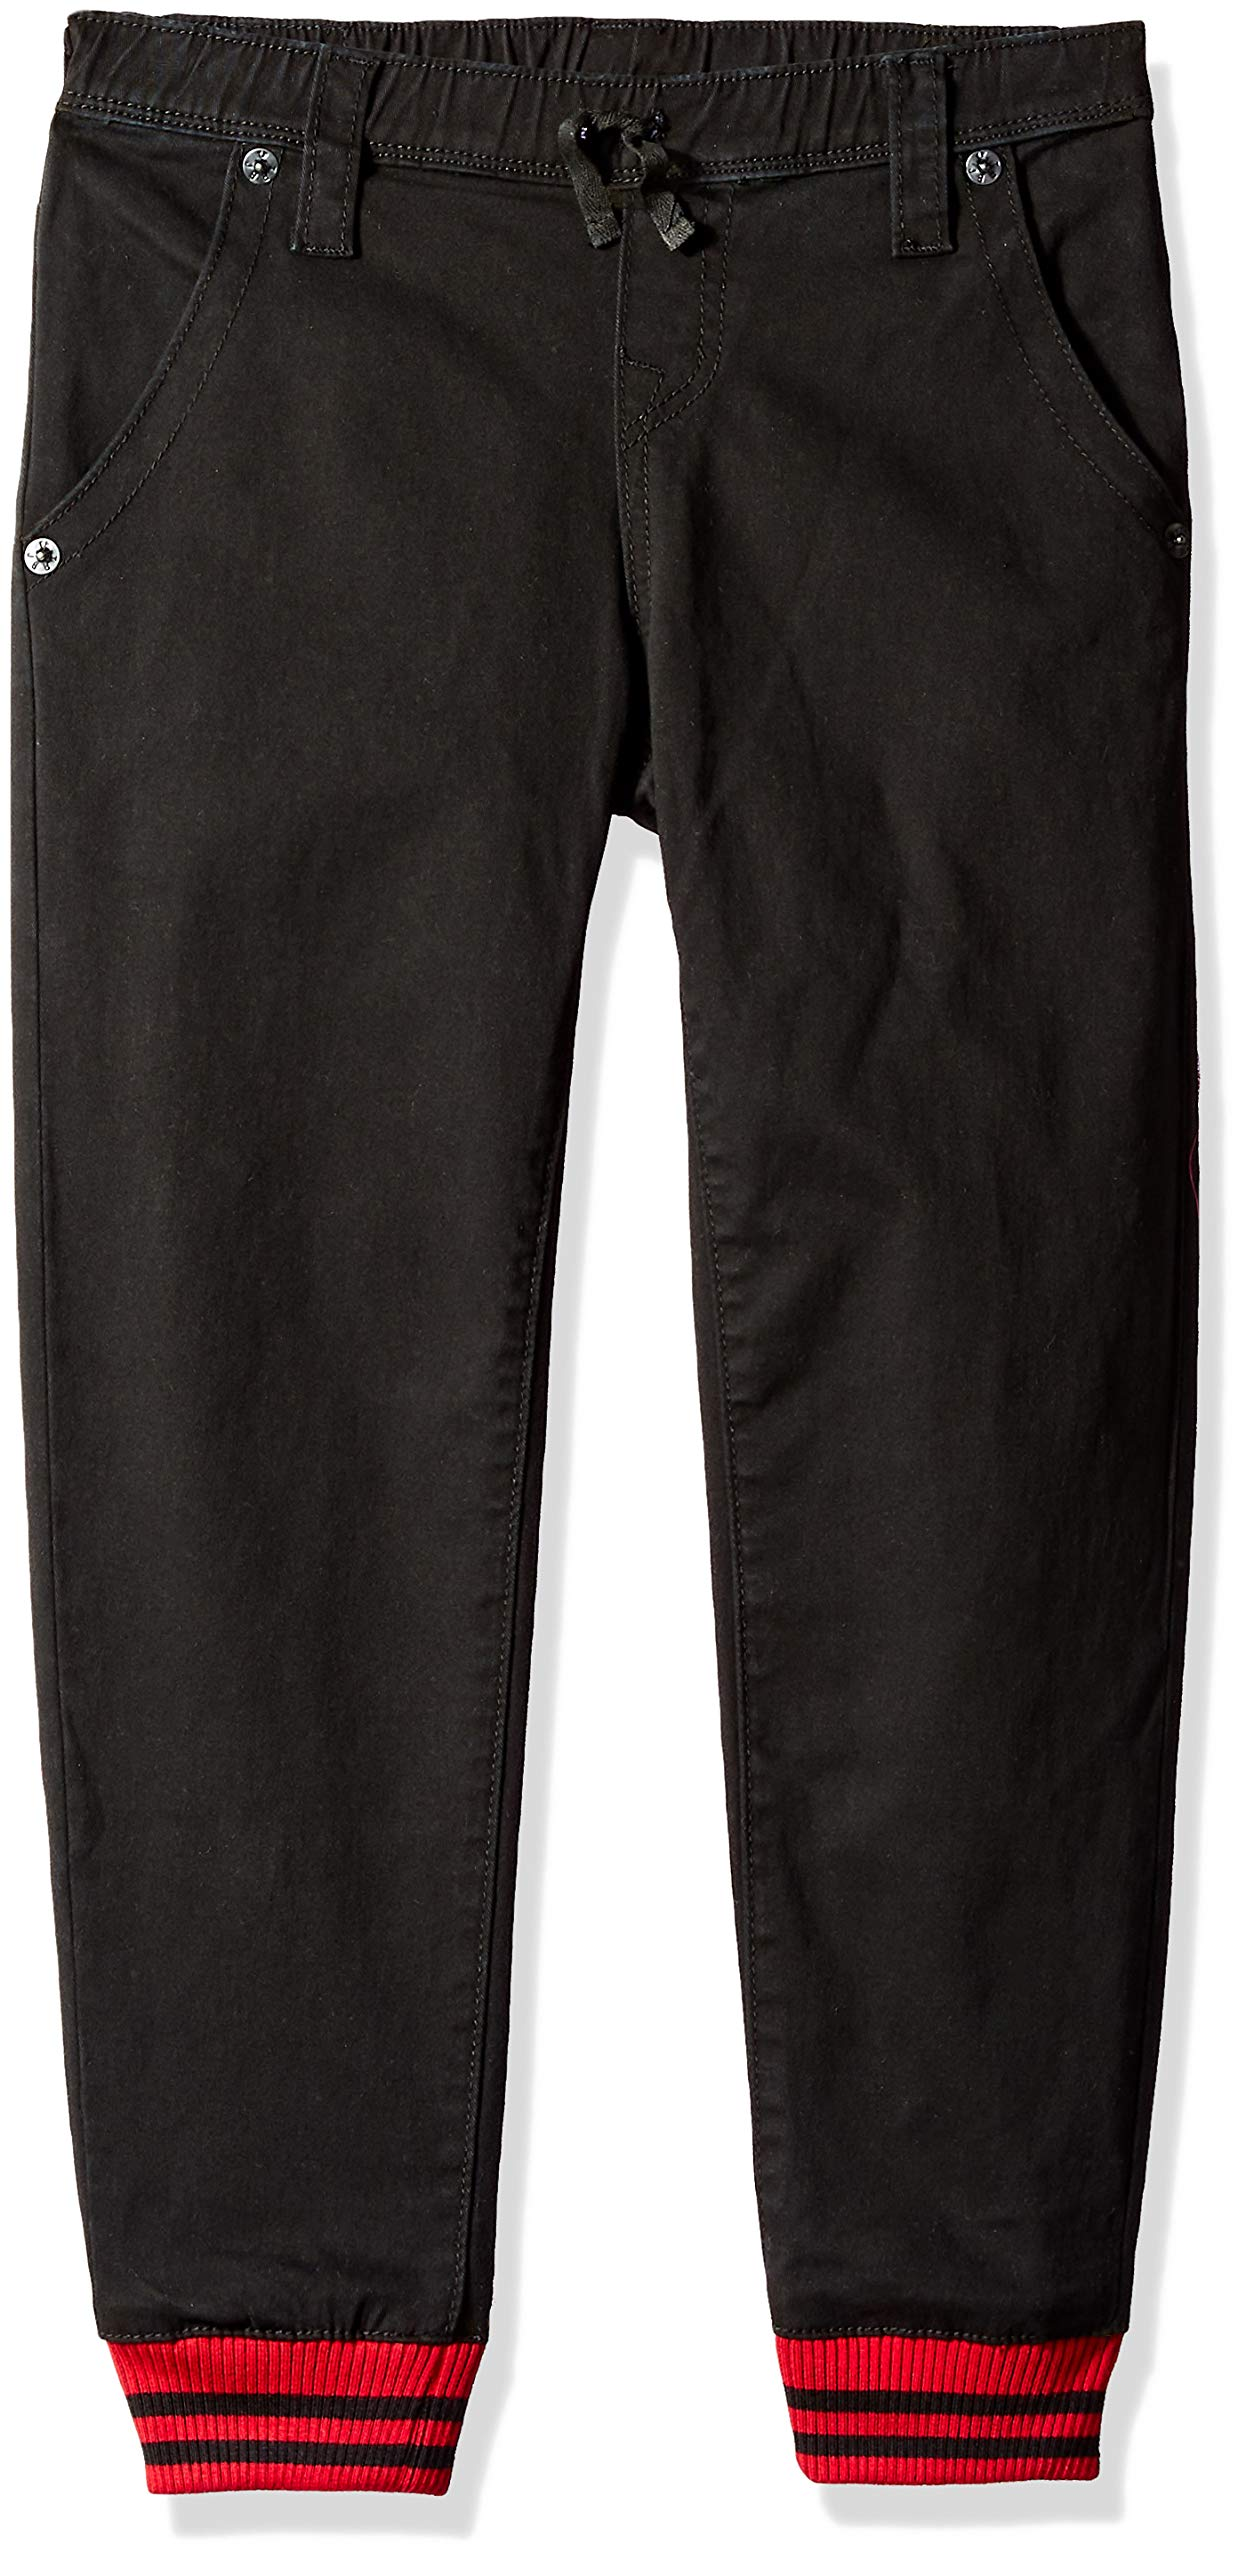 True Religion Boys' Little French Terry Sweatpant, Black/Turquoise, 7